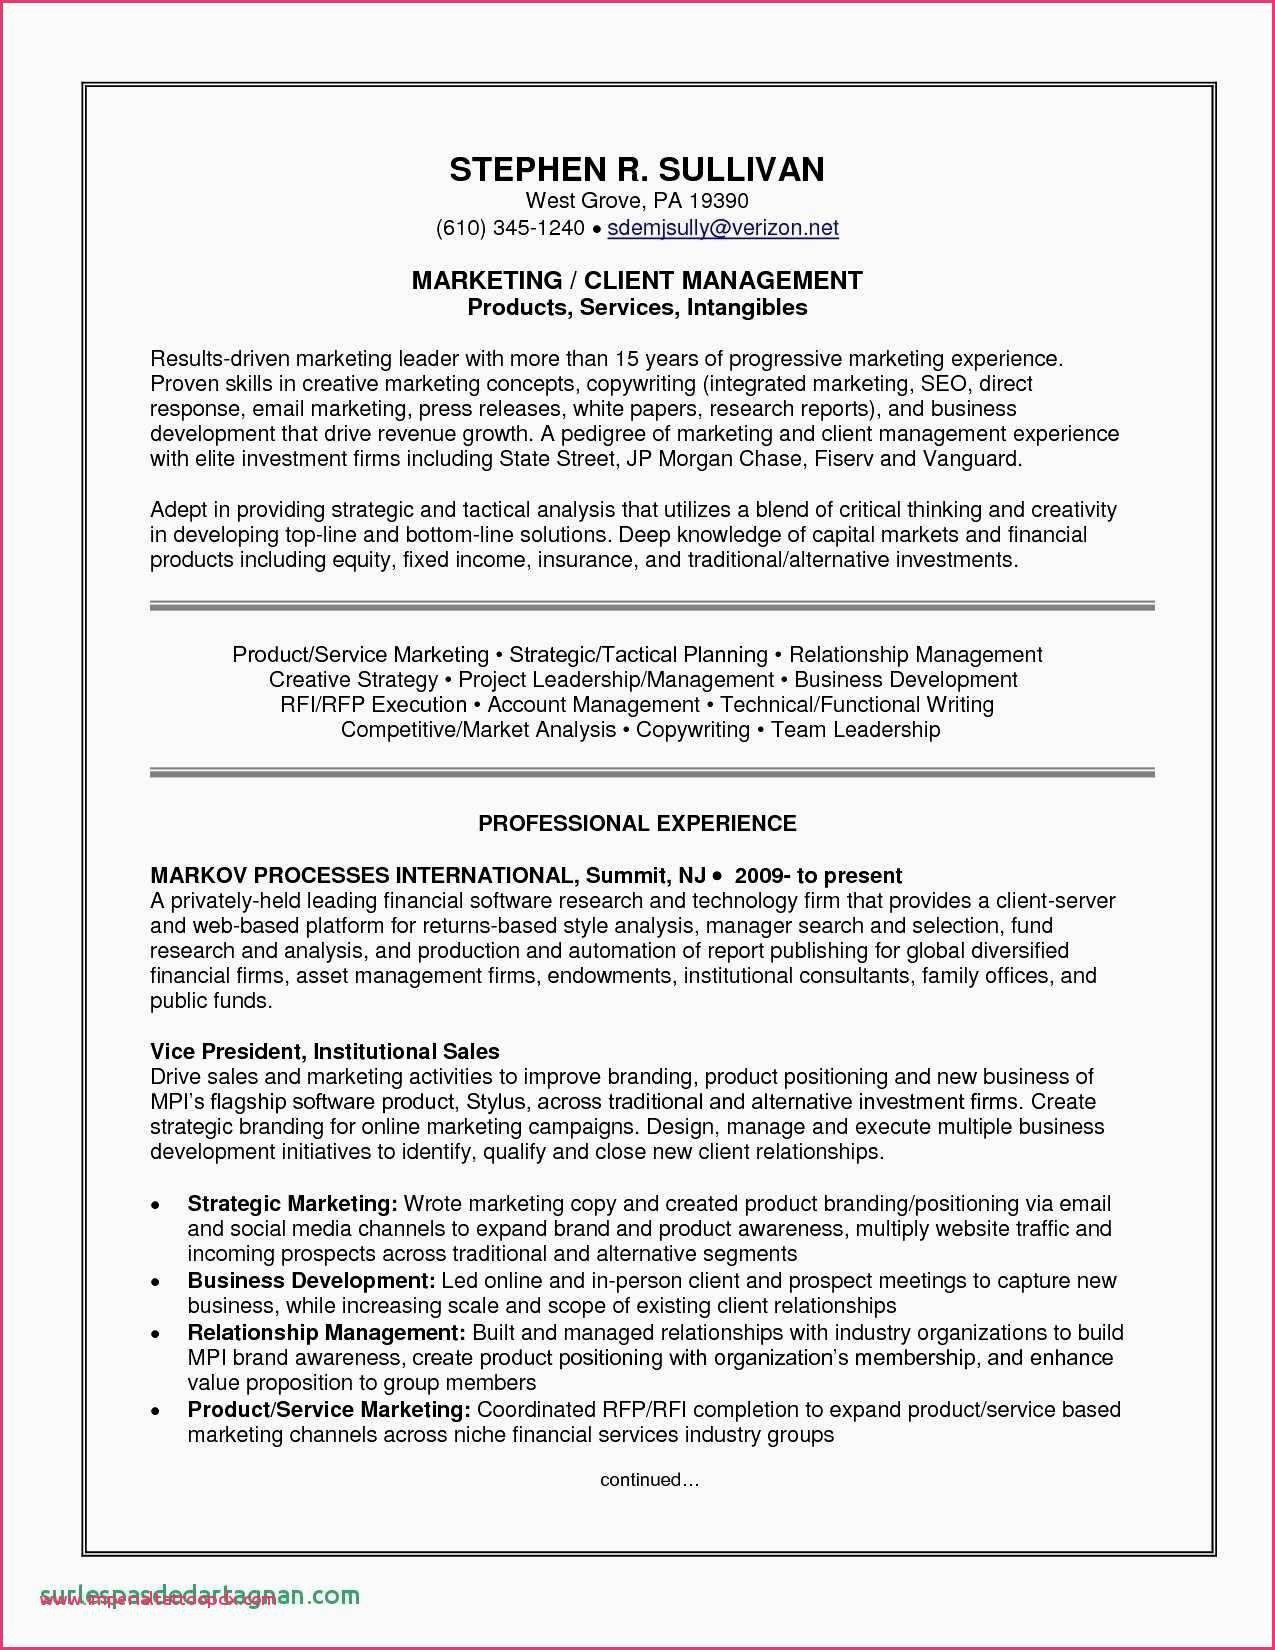 Resume Professional Writers Reviews Unique top Resume